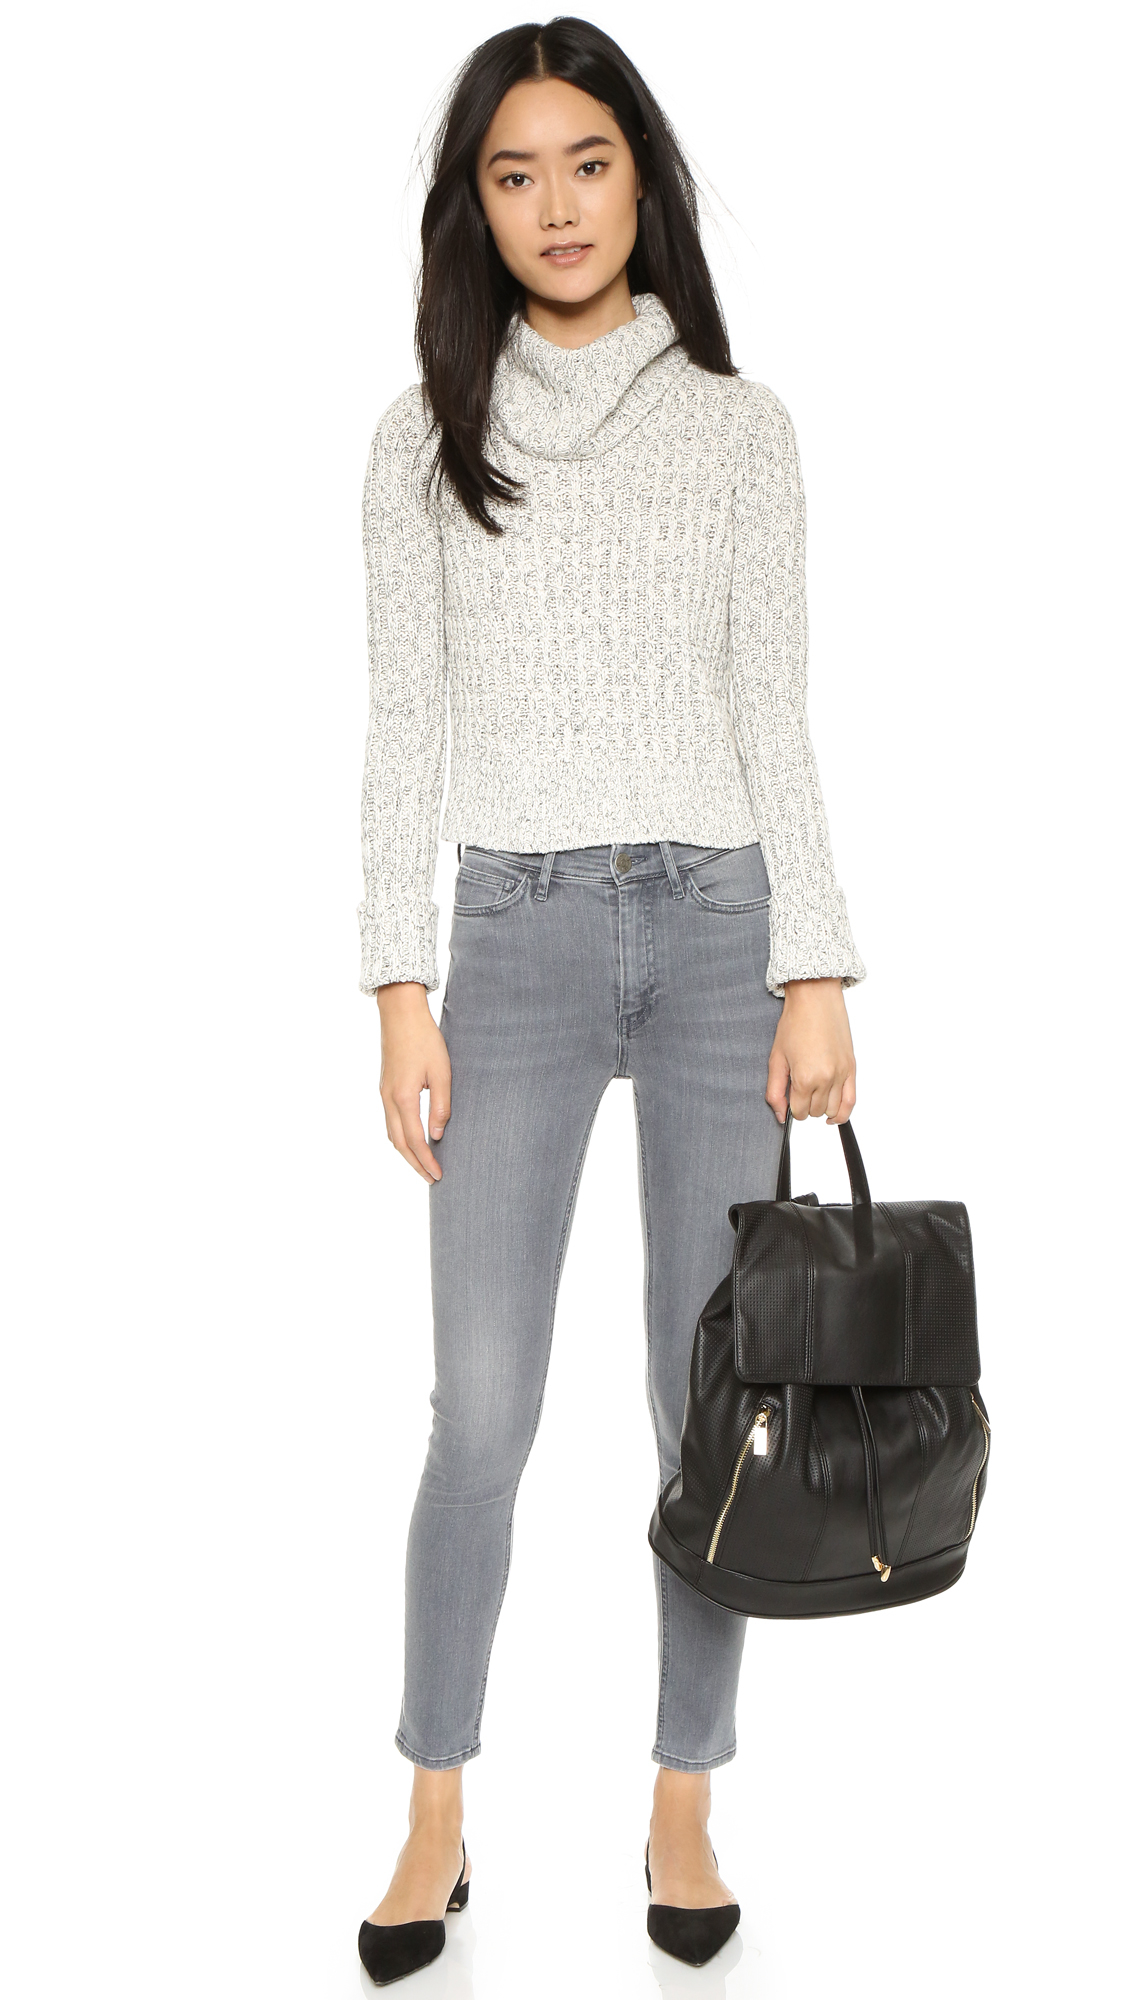 Deux Lux Downtown Backpack in Black